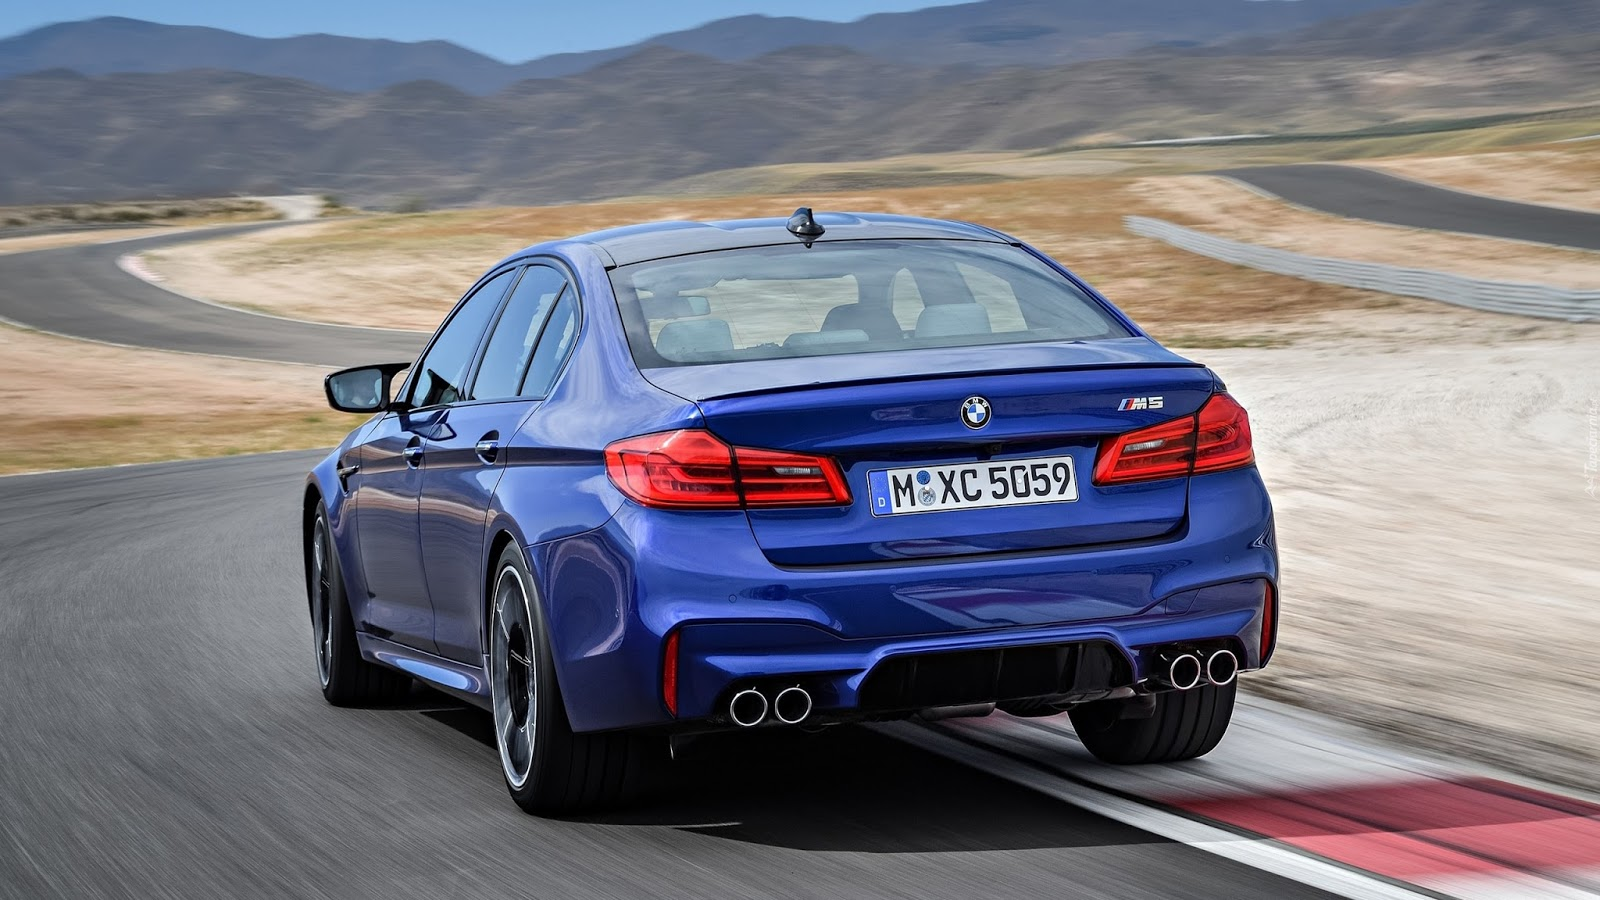 m52Bf90 Δες τη νέα BMW M5 να κάνει 7:38.9 στη Nordschliefe